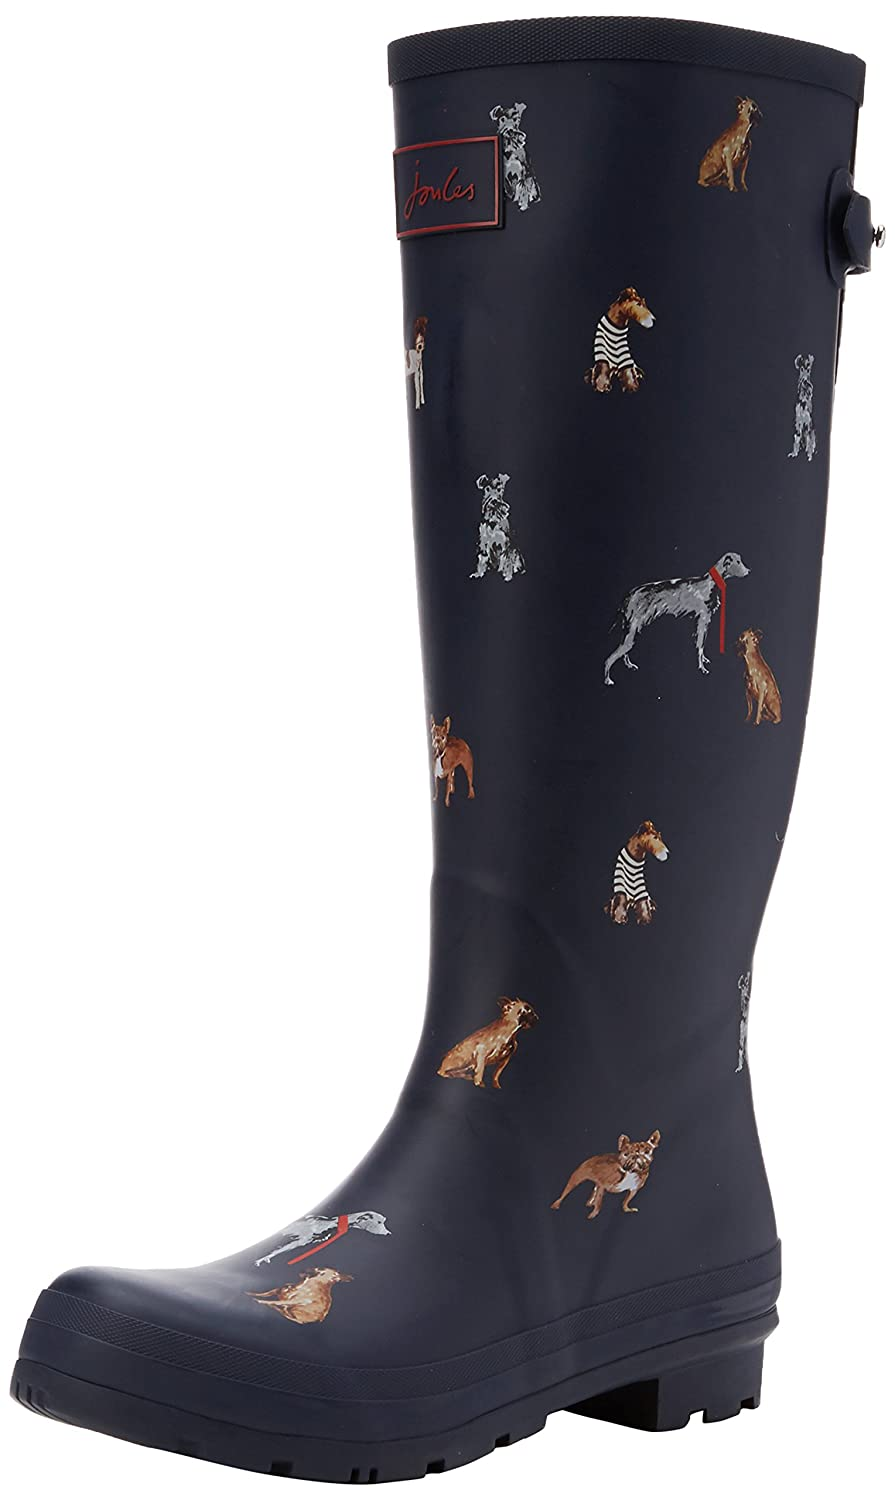 Joules Women's Ajusta Rain Boot B06WGNWB19 5 B(M) US|French Navy Cosy Dogs